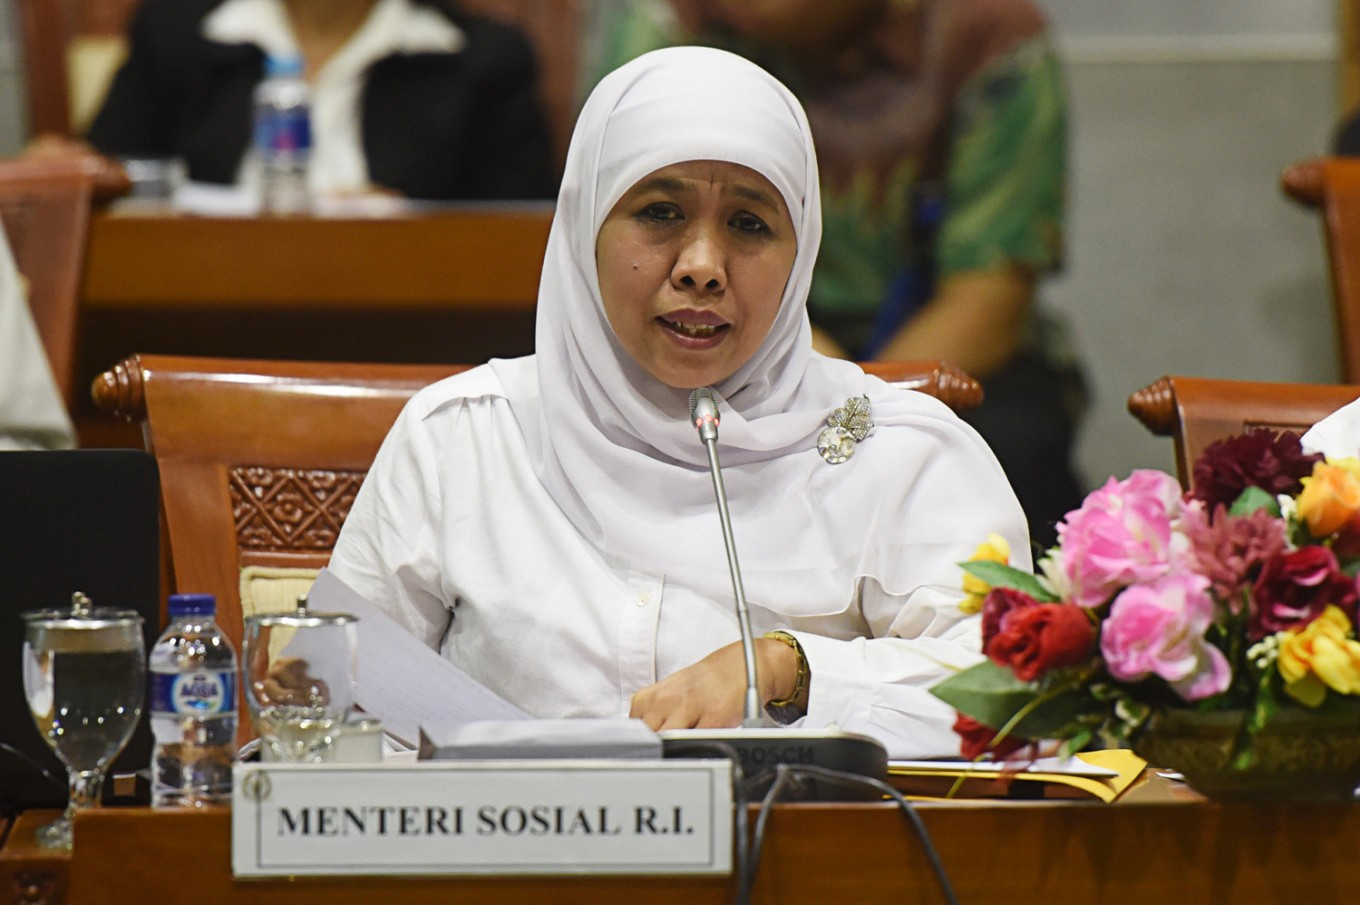 Alleged male prostitution ring in Batam must be investigated: Minister